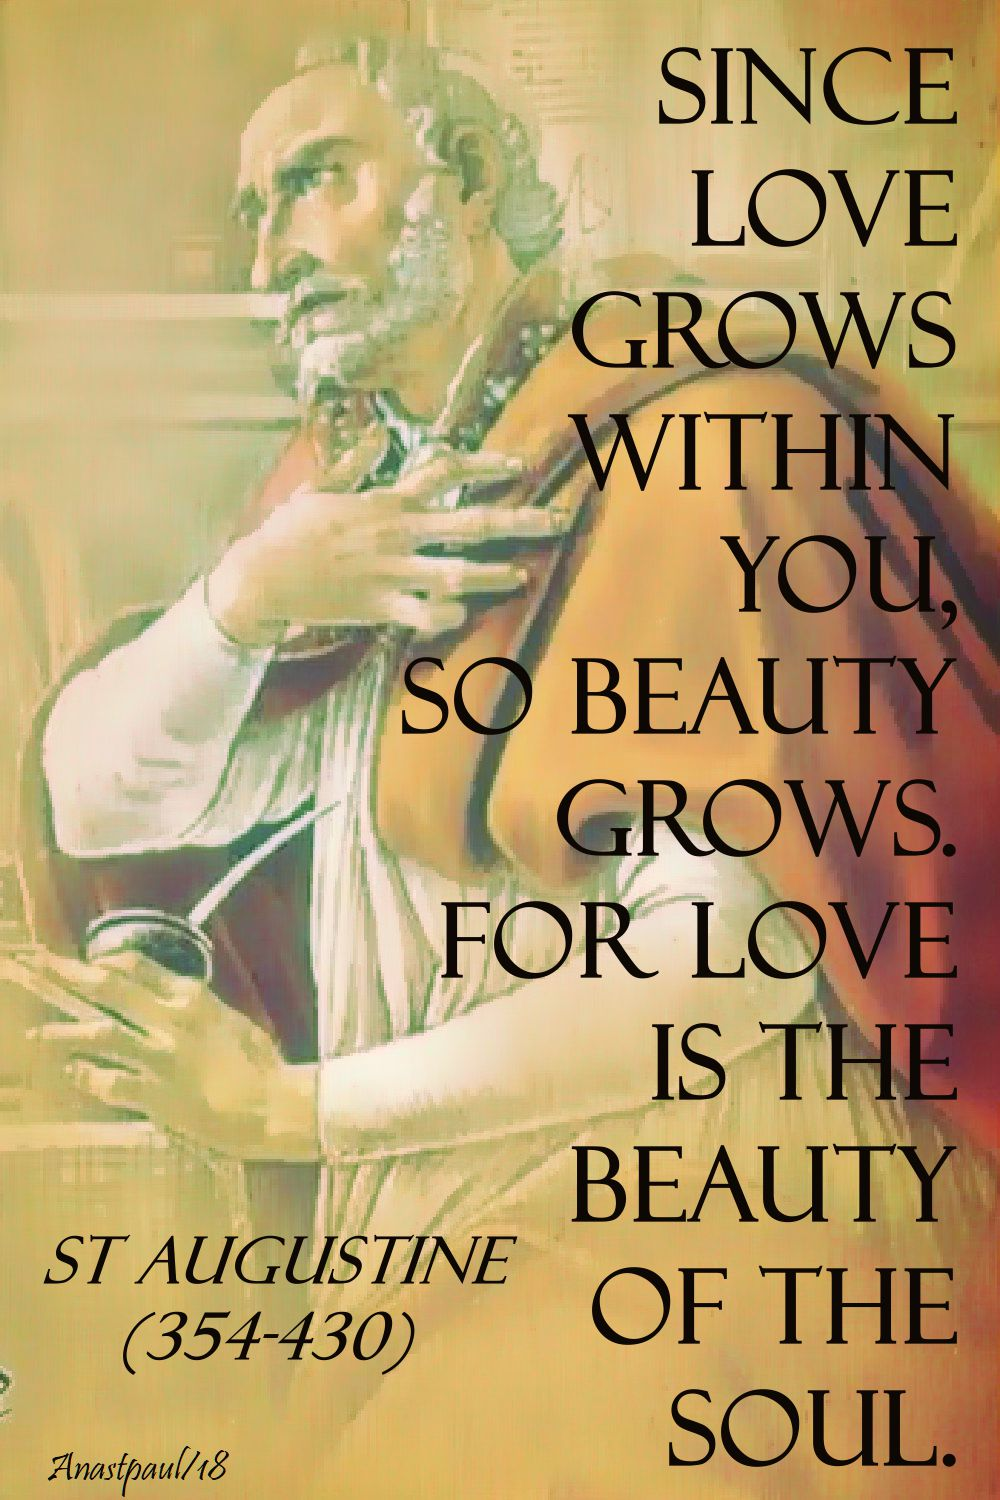 since love grows within you - st augustine - 3 april 2018